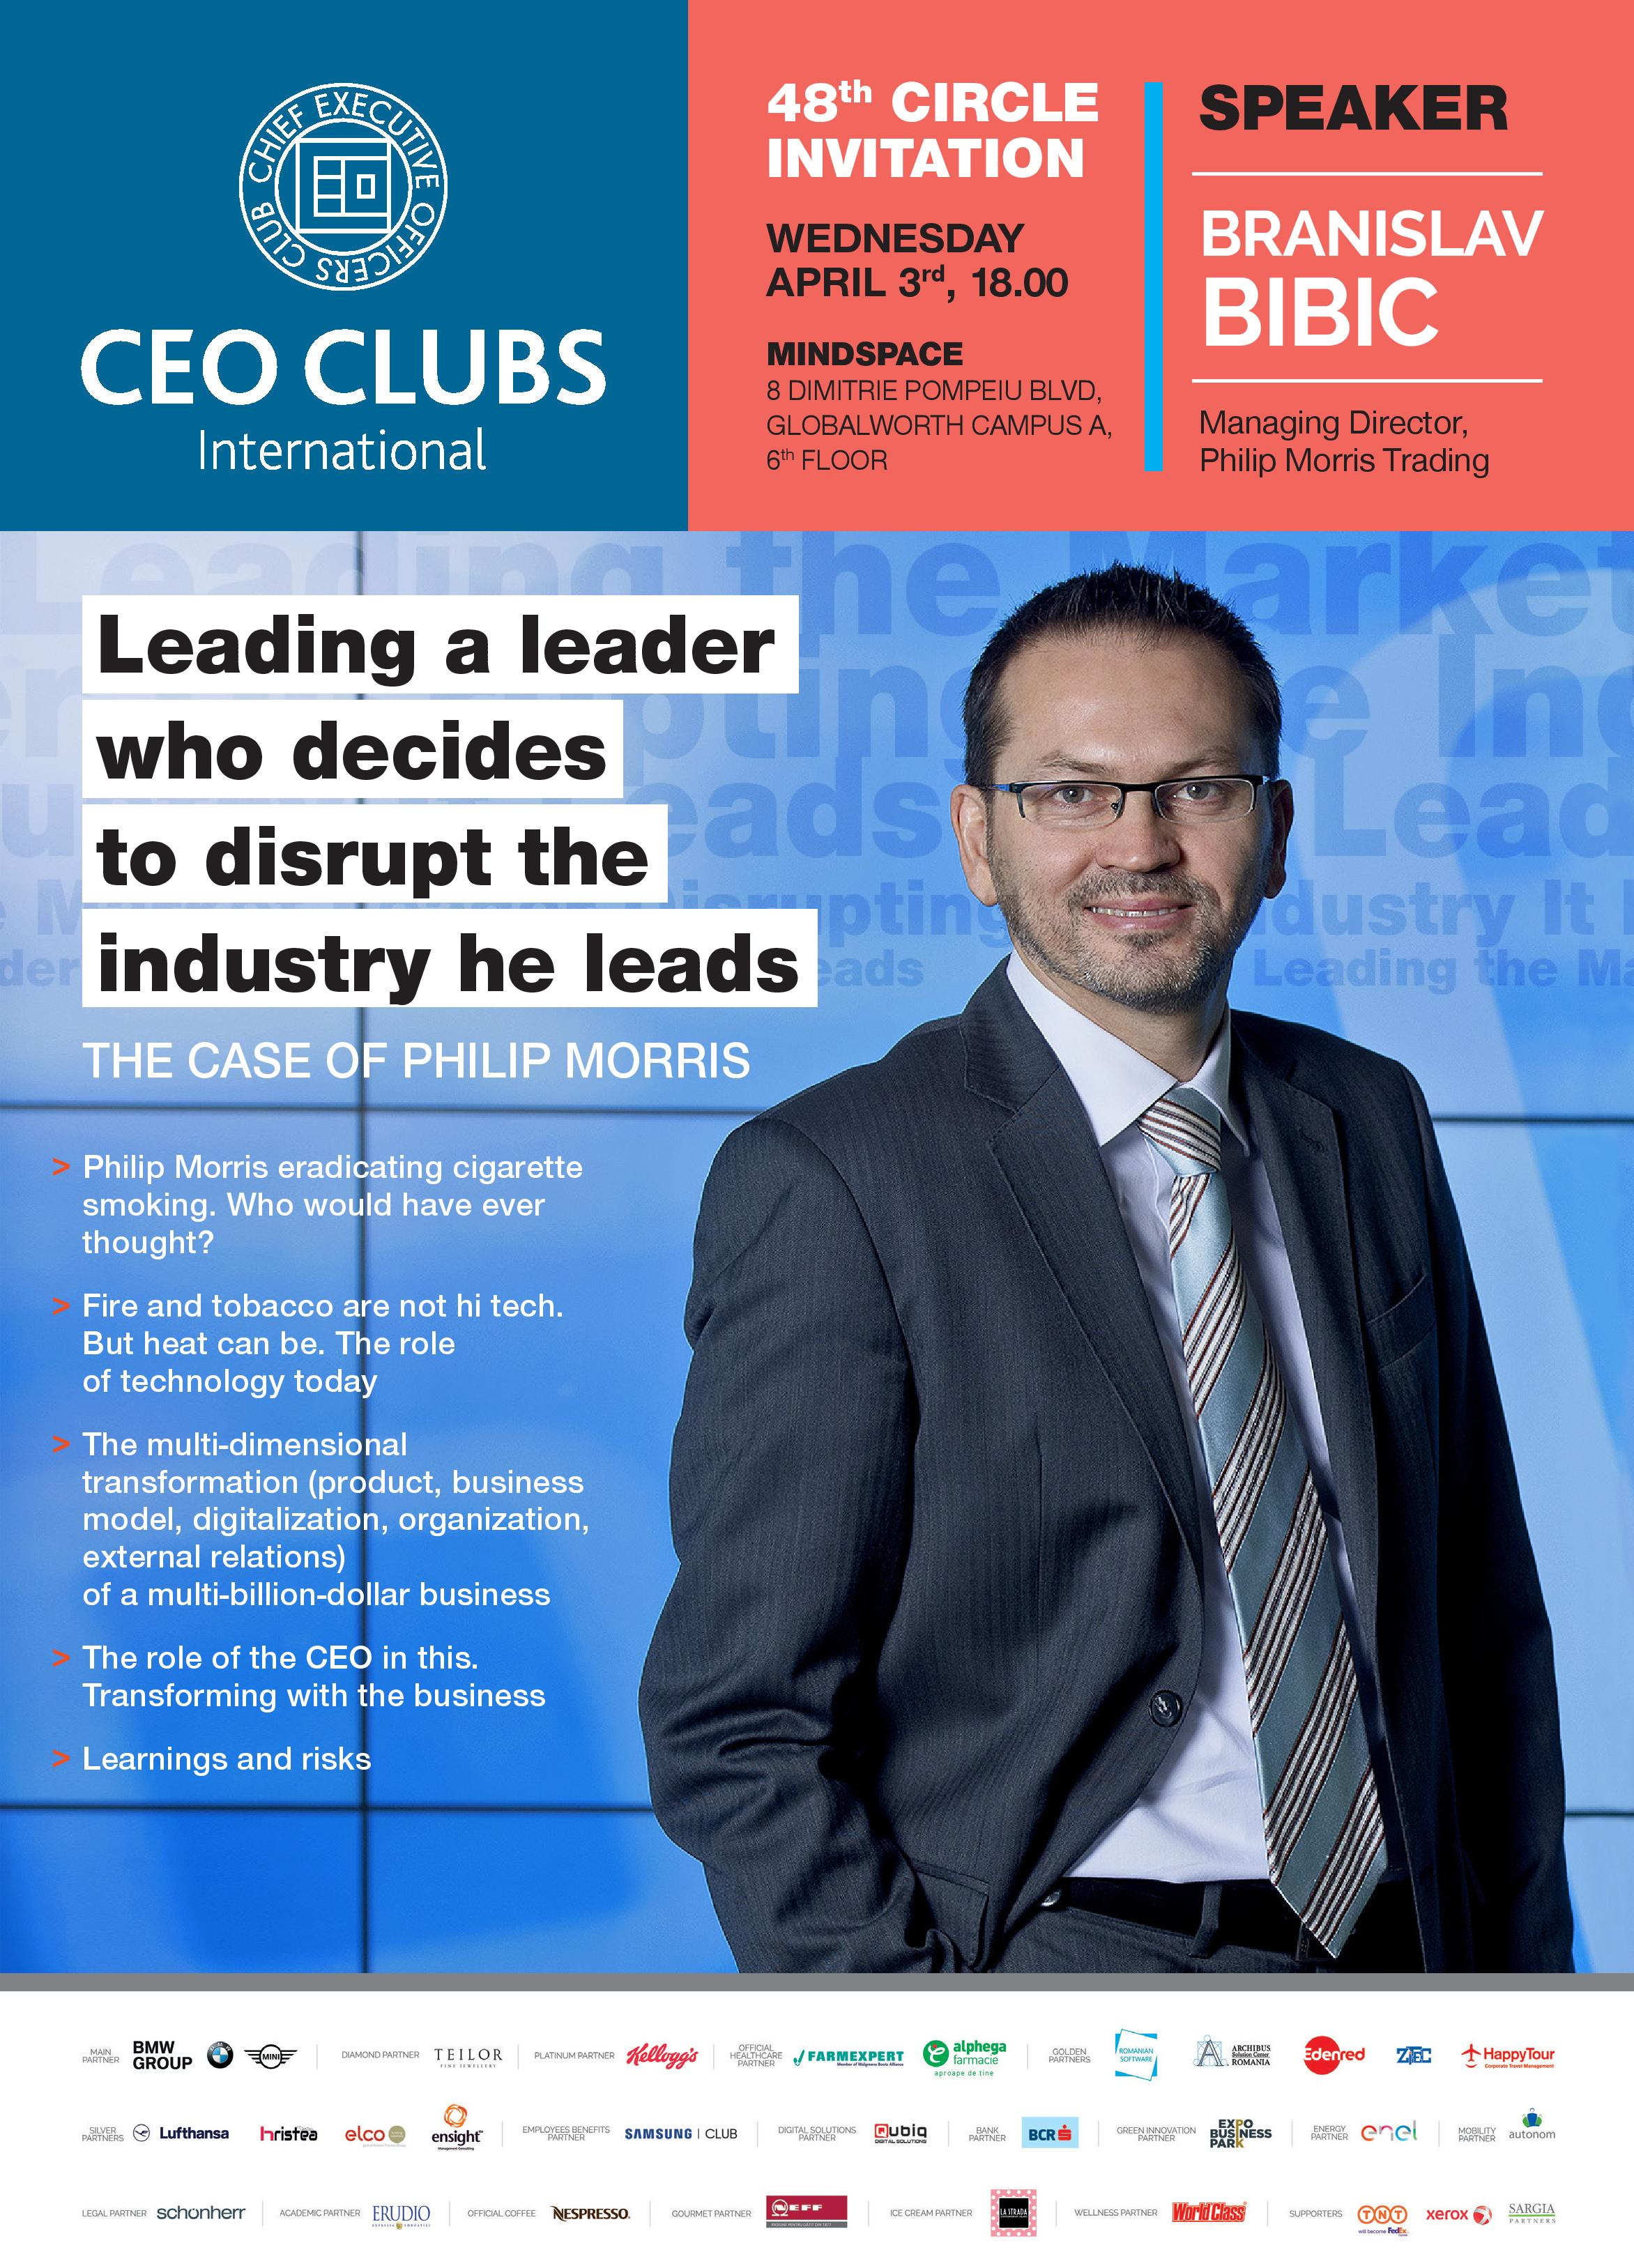 48th Circle: Leading a leader who decides to disrupt the industry he leads